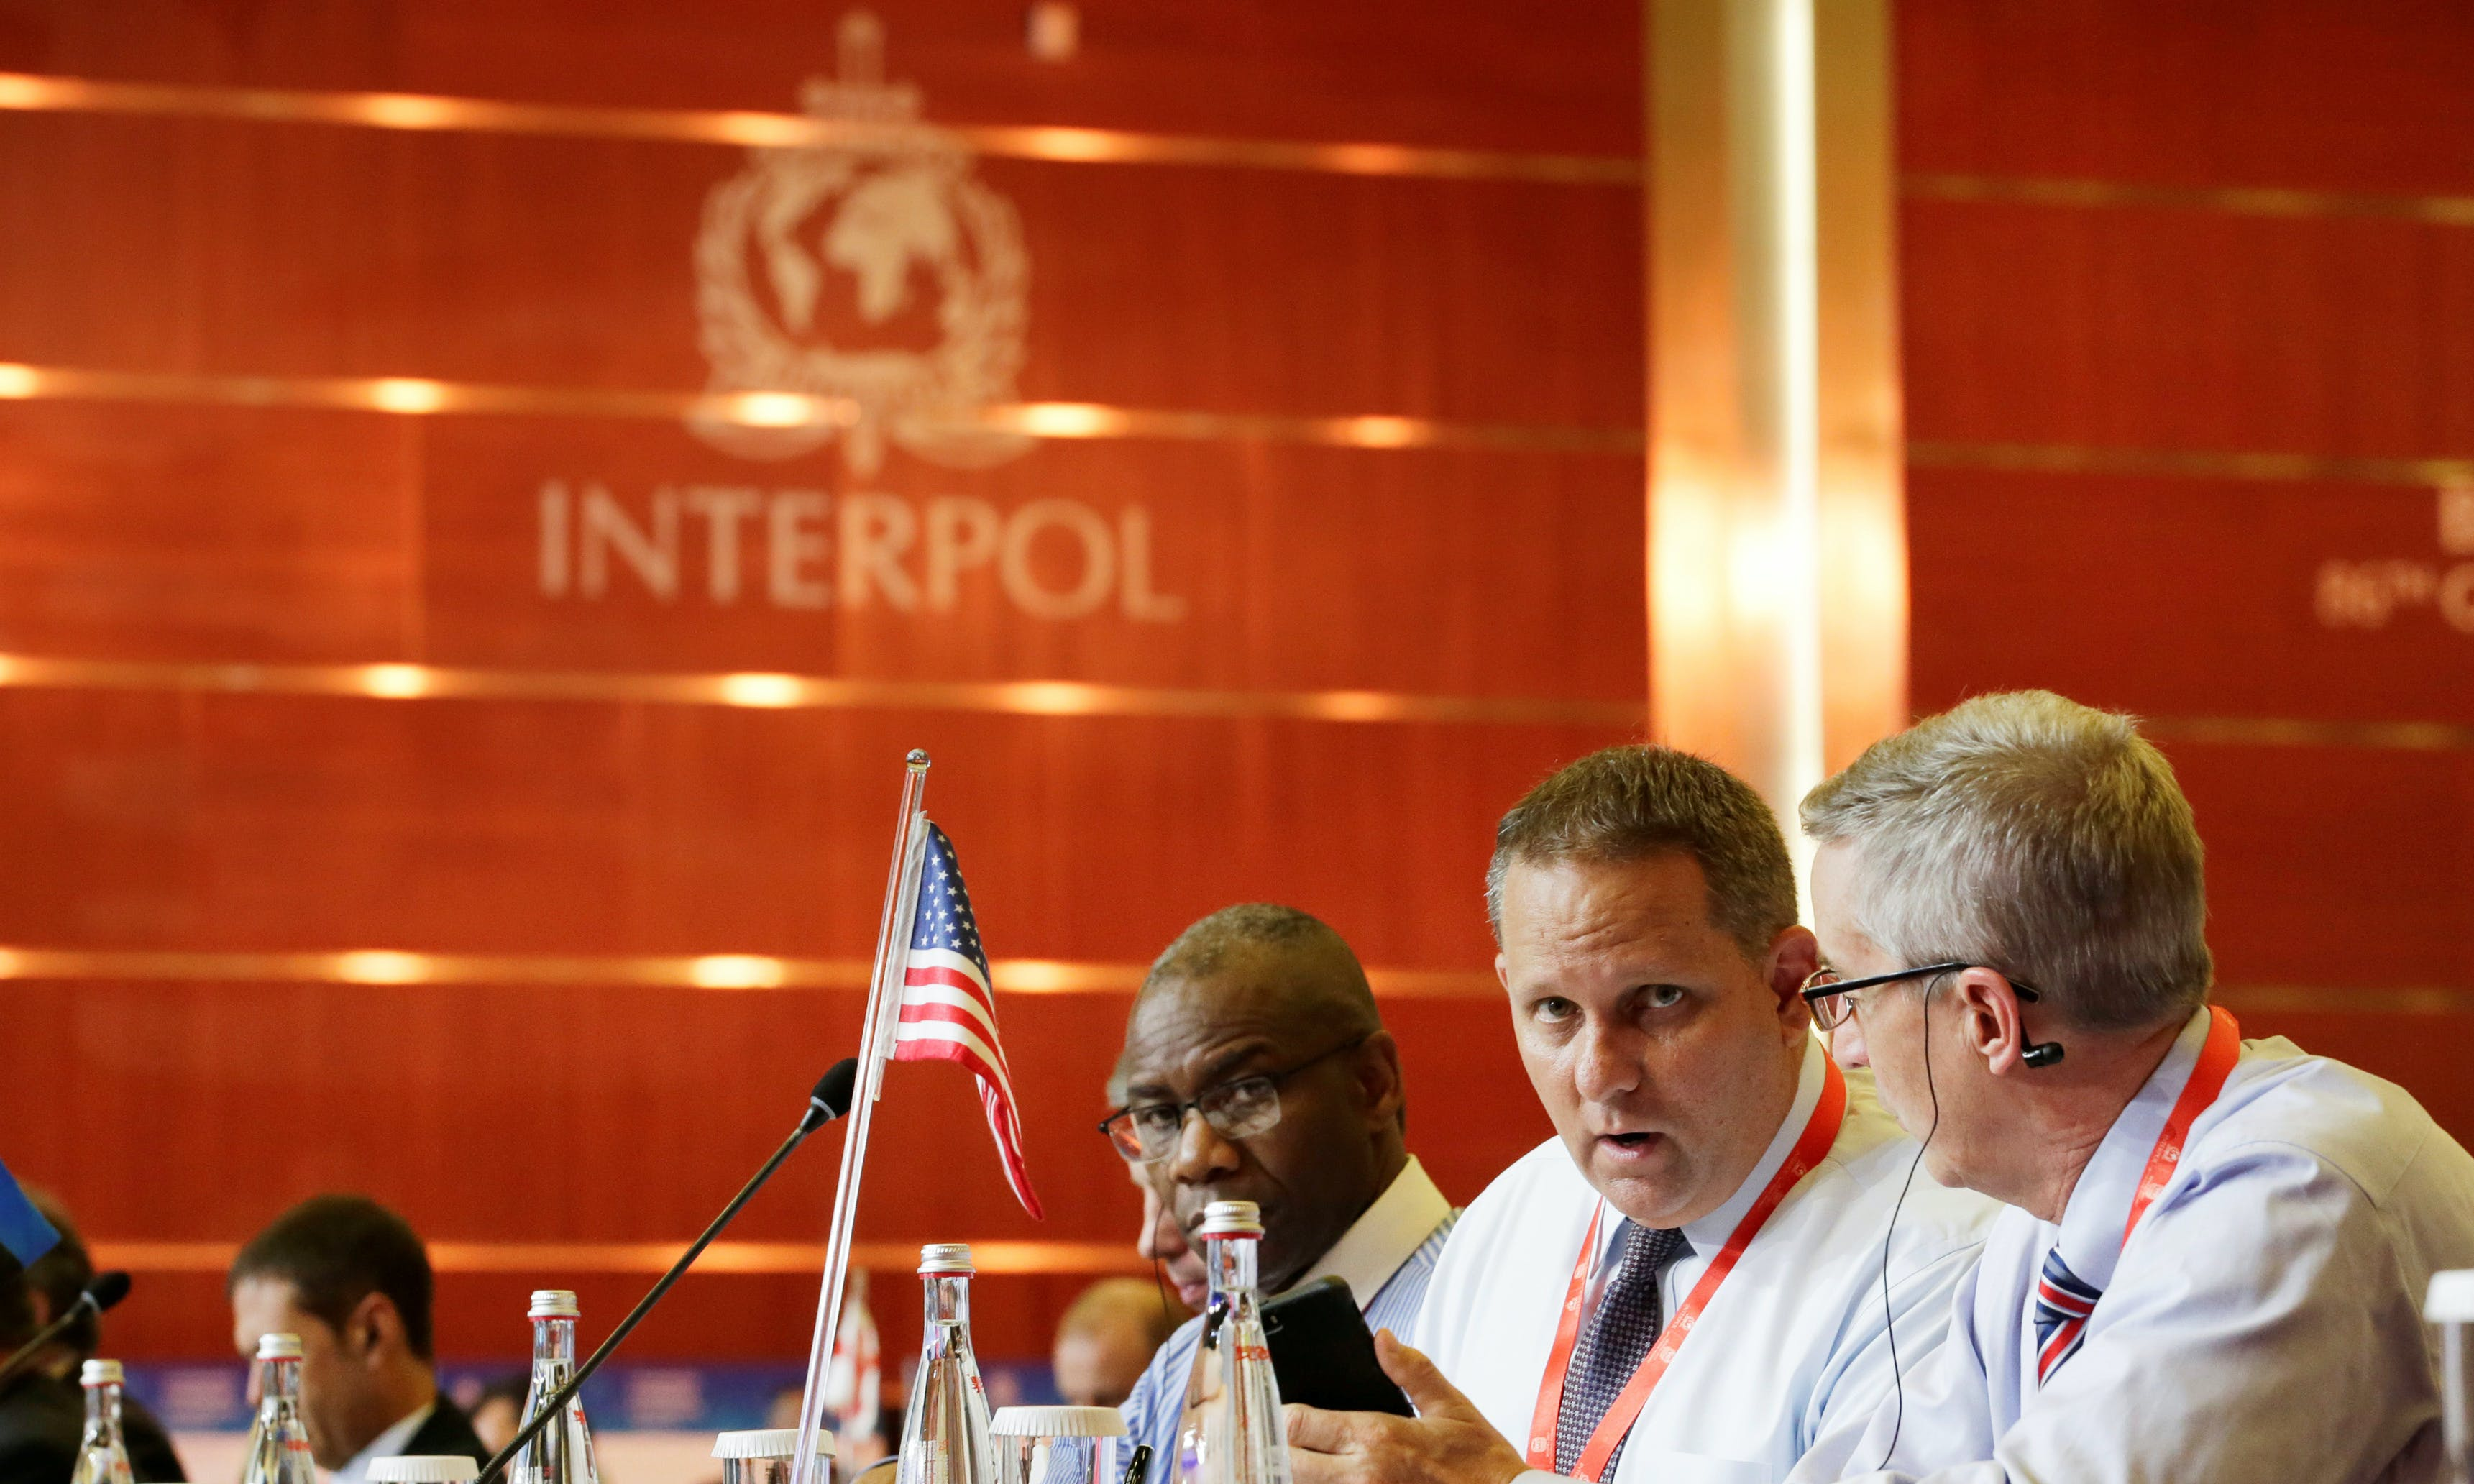 OPINION: Interpol Must Let Taiwan Join Its 87th General Assembly